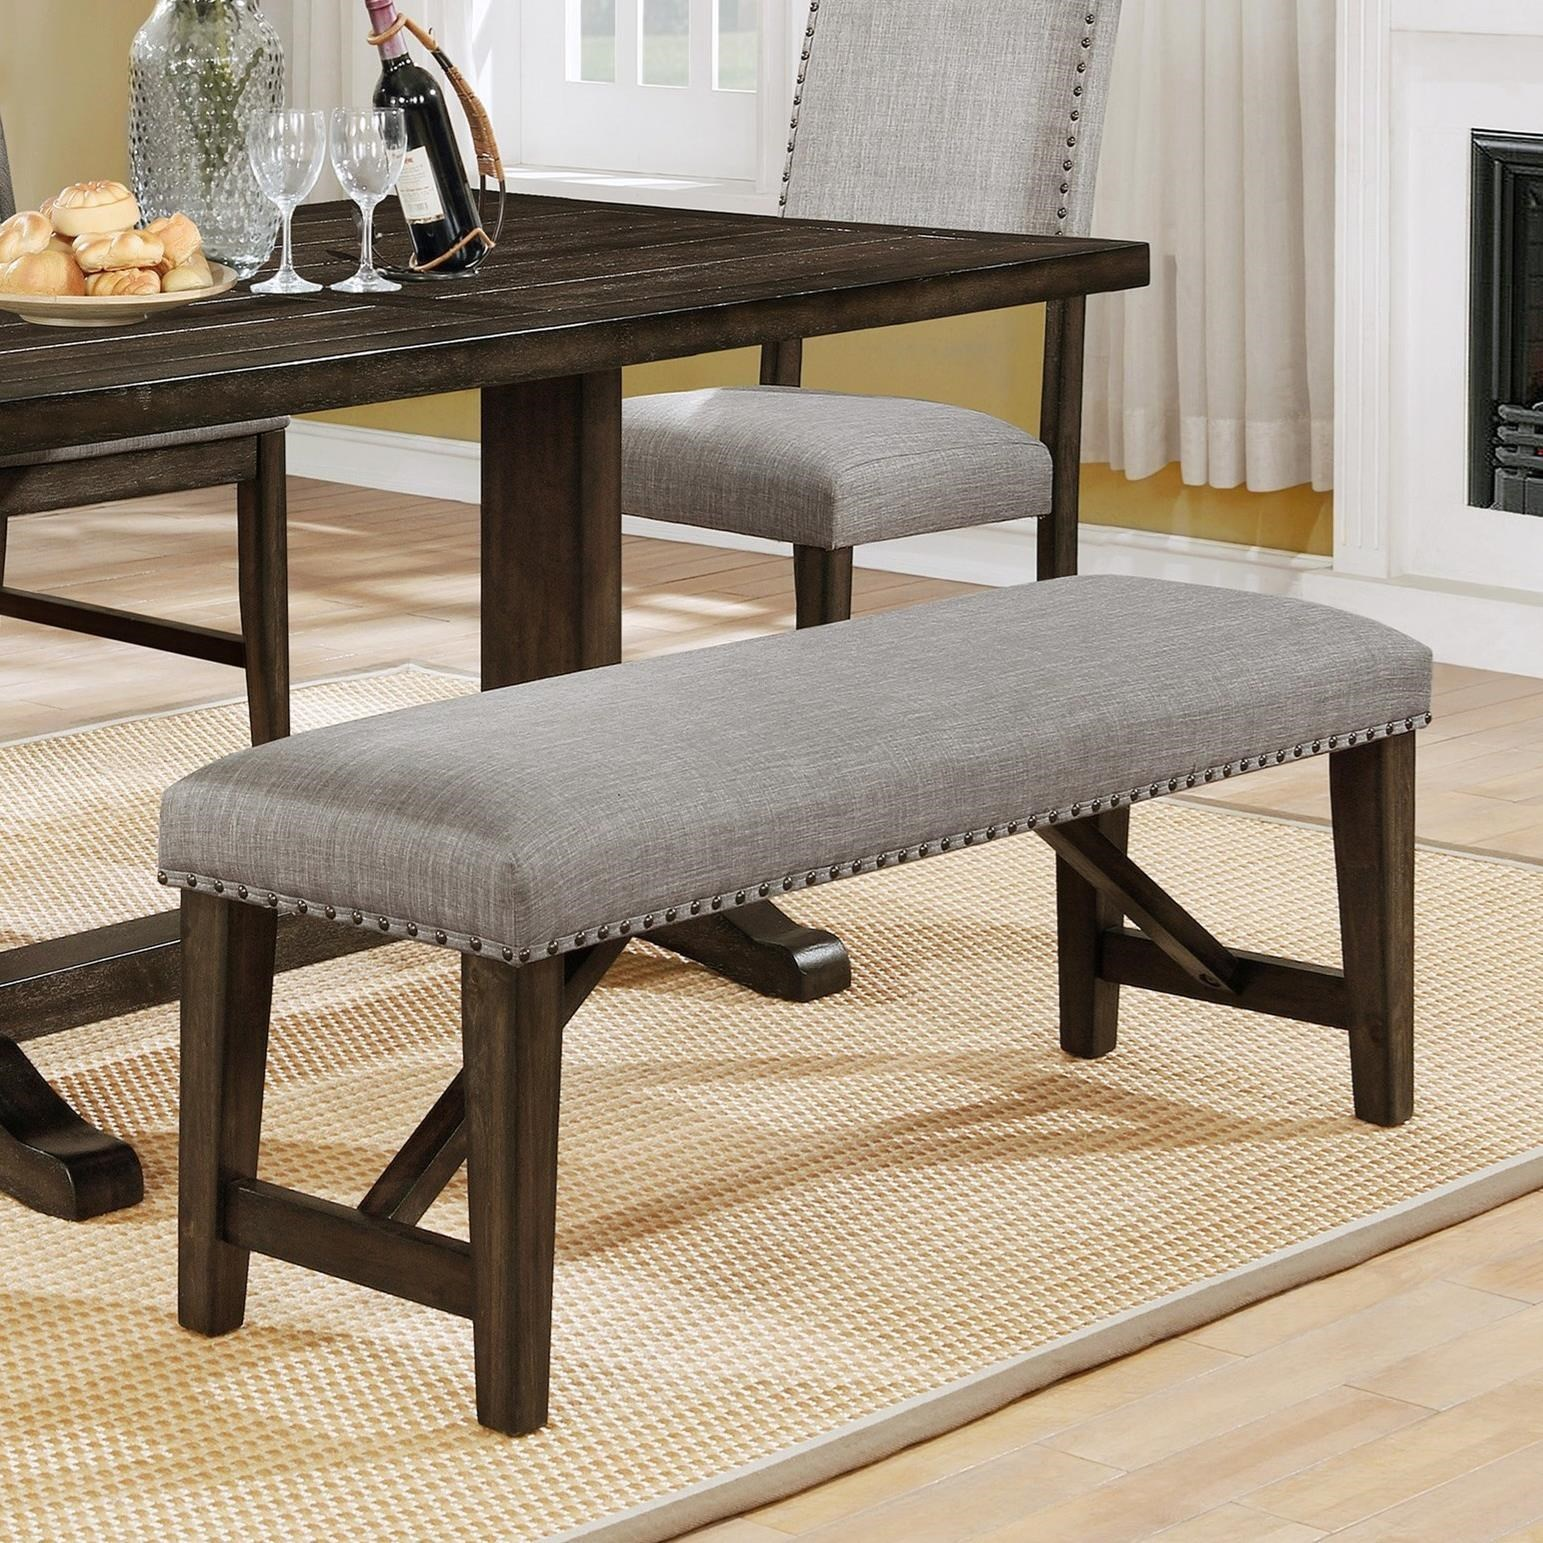 upholstered dining bench cream crown mark edwina upholstered dining bench with nailhead trim